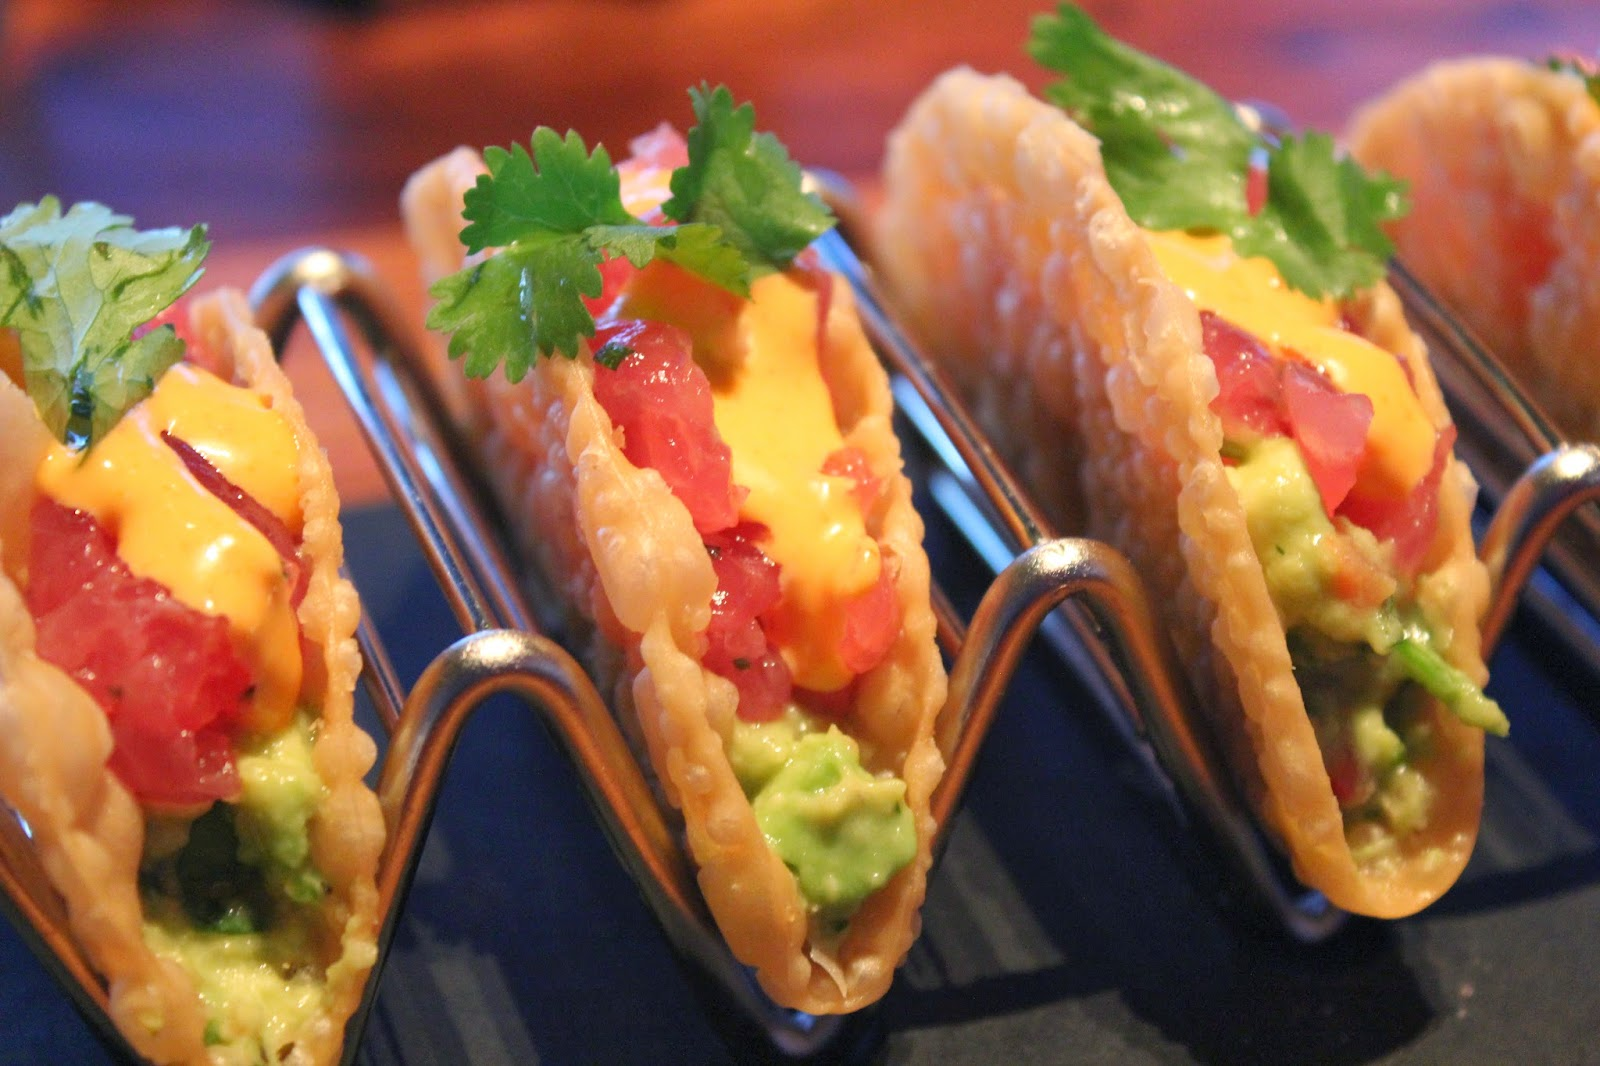 Ahi tacos at Del Frisco's Grille